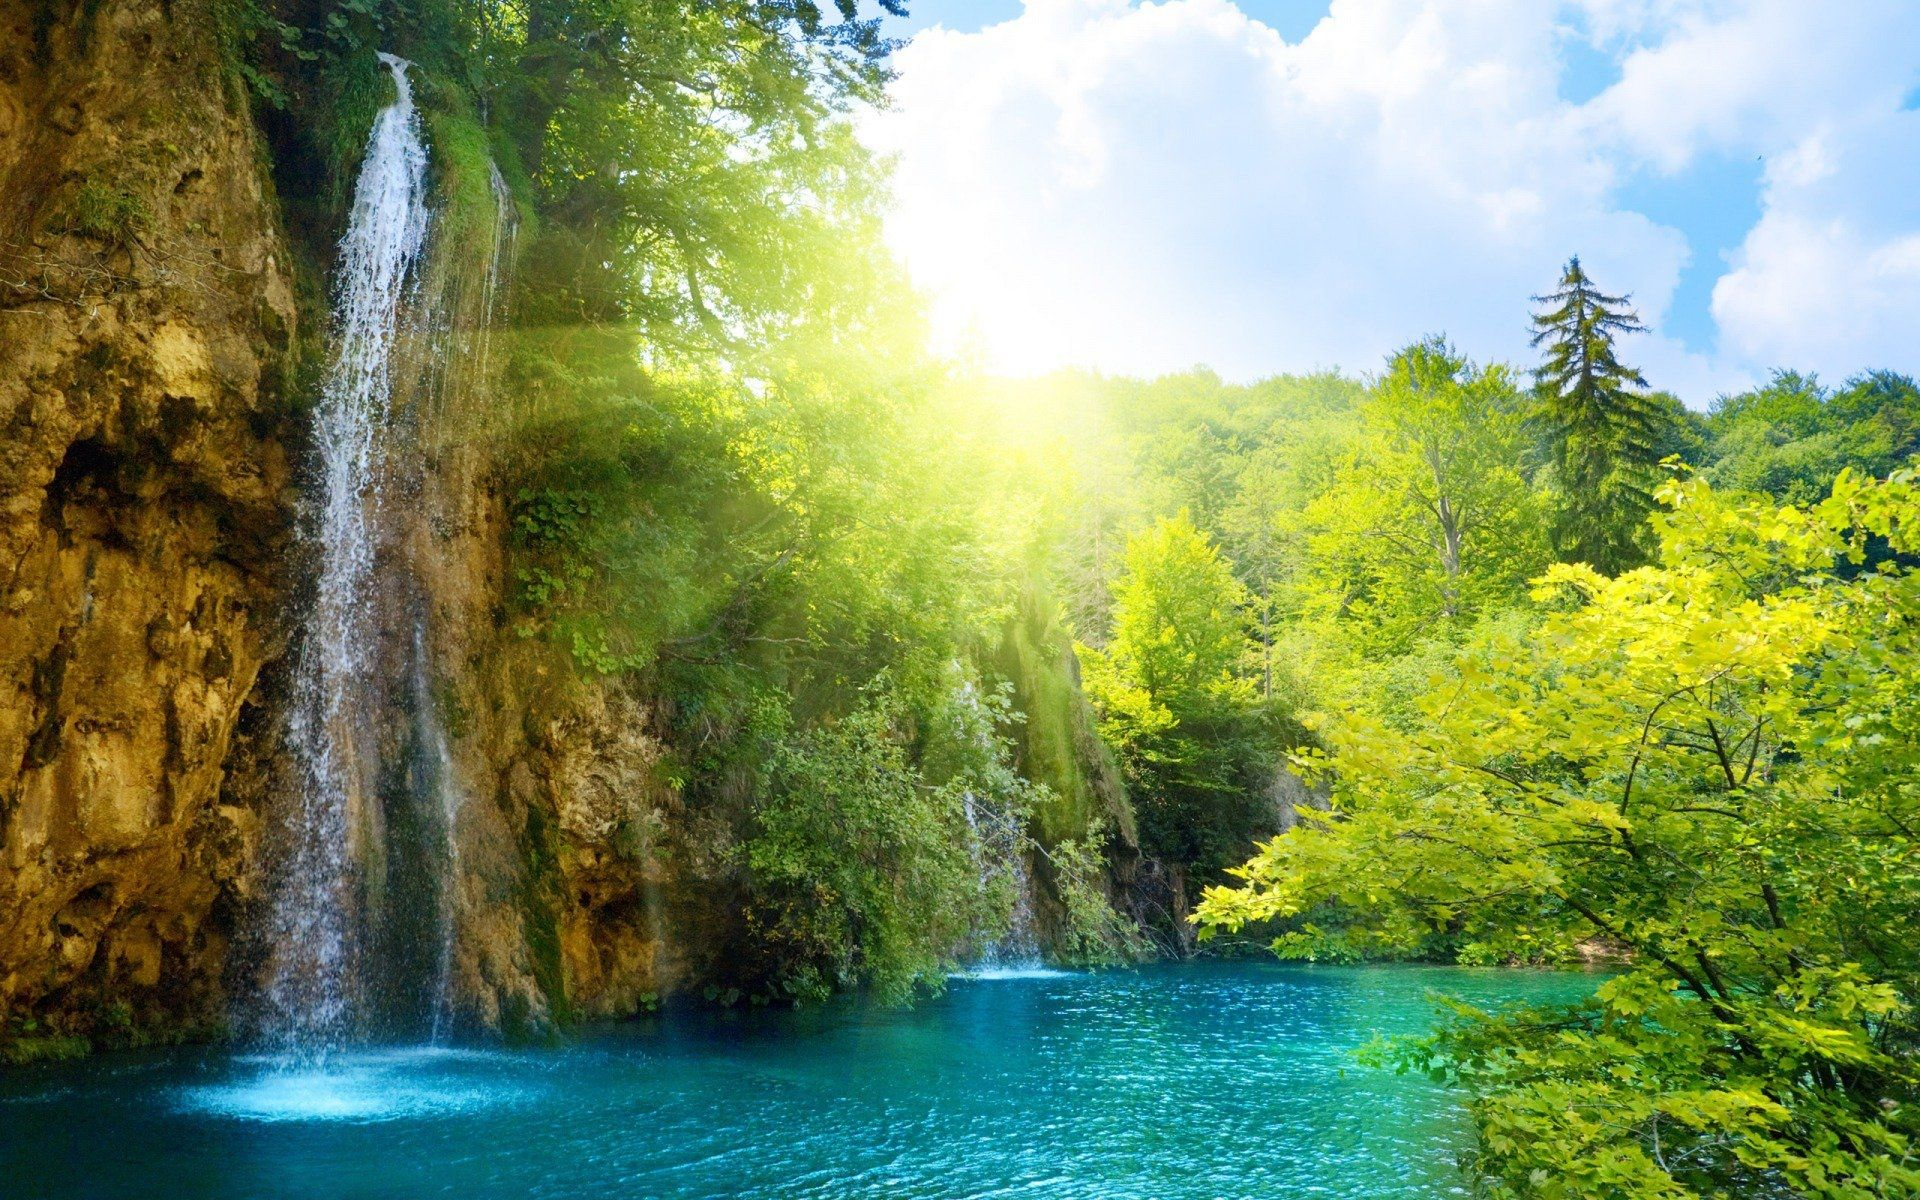 Free Waterfall Wallpapers Desktop Background With Images Waterfall Wallpaper Waterfall Nature